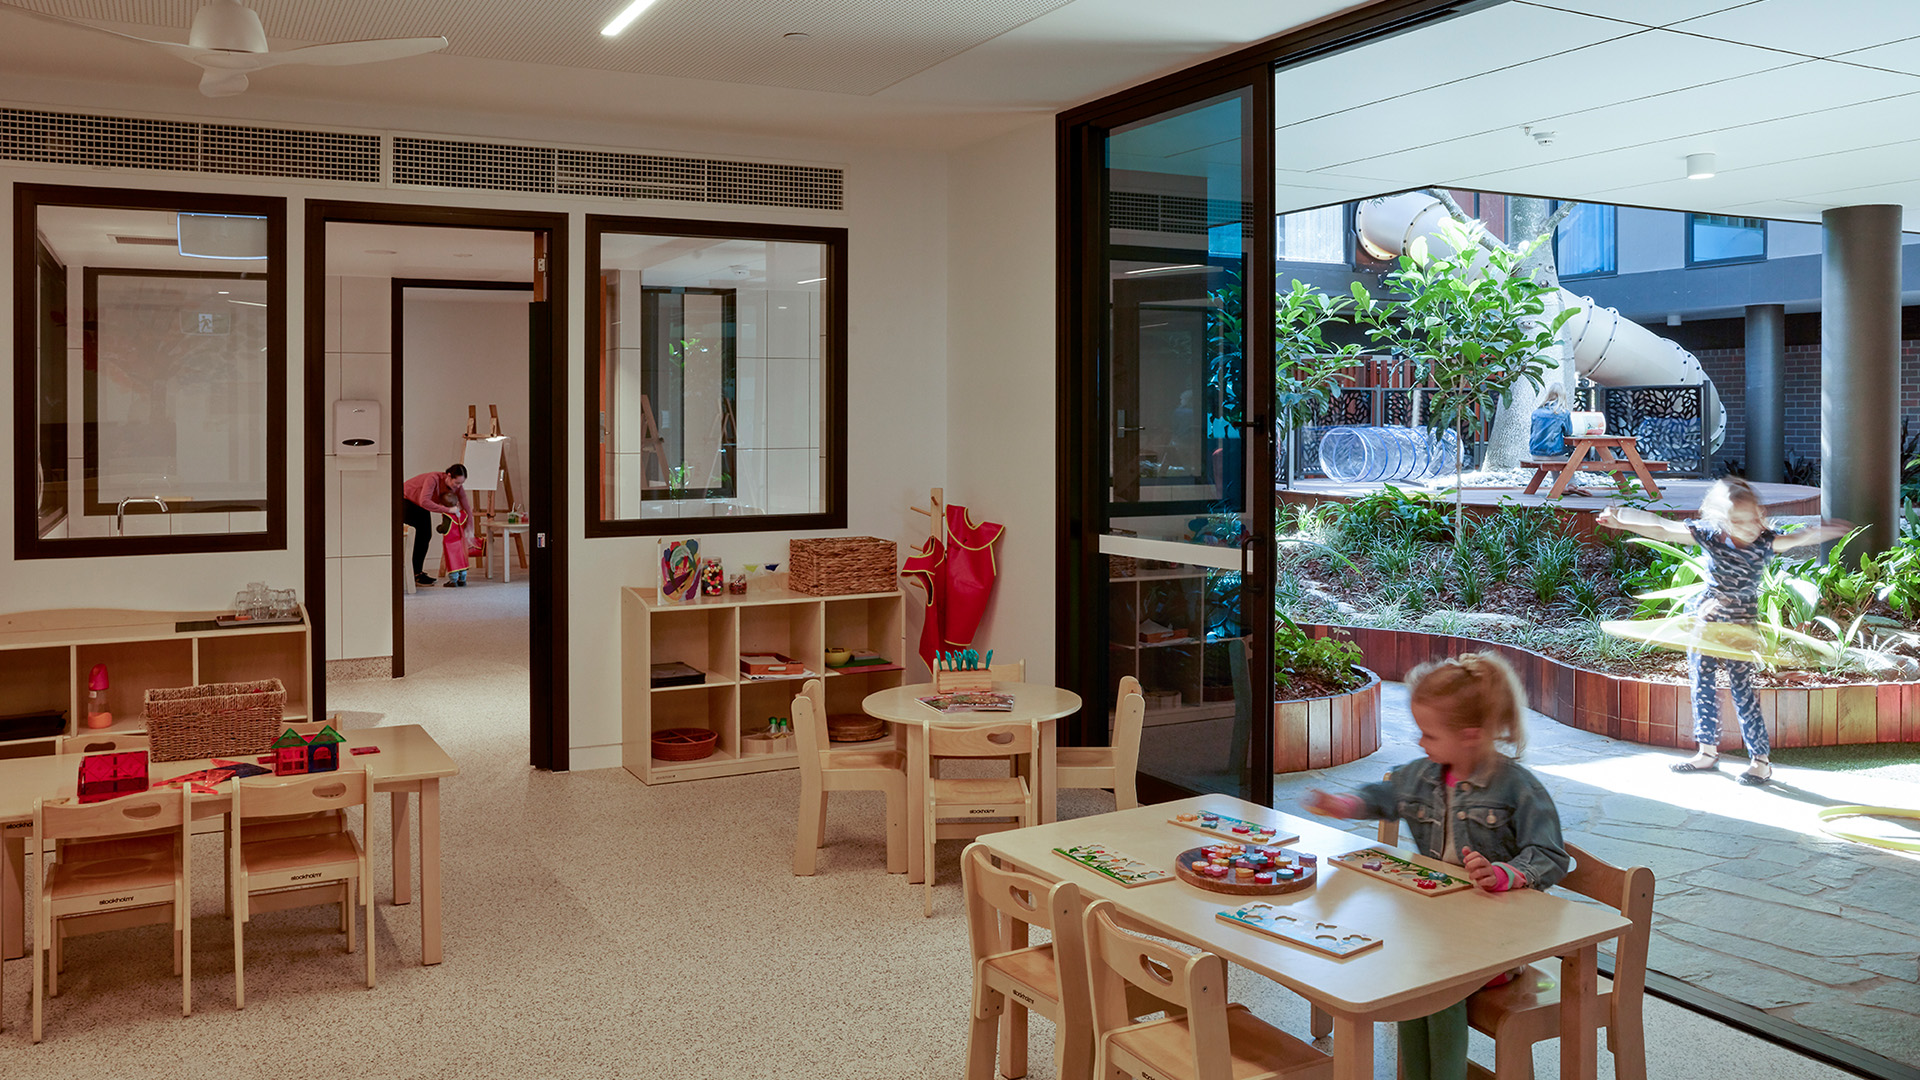 Habitat Early Learning